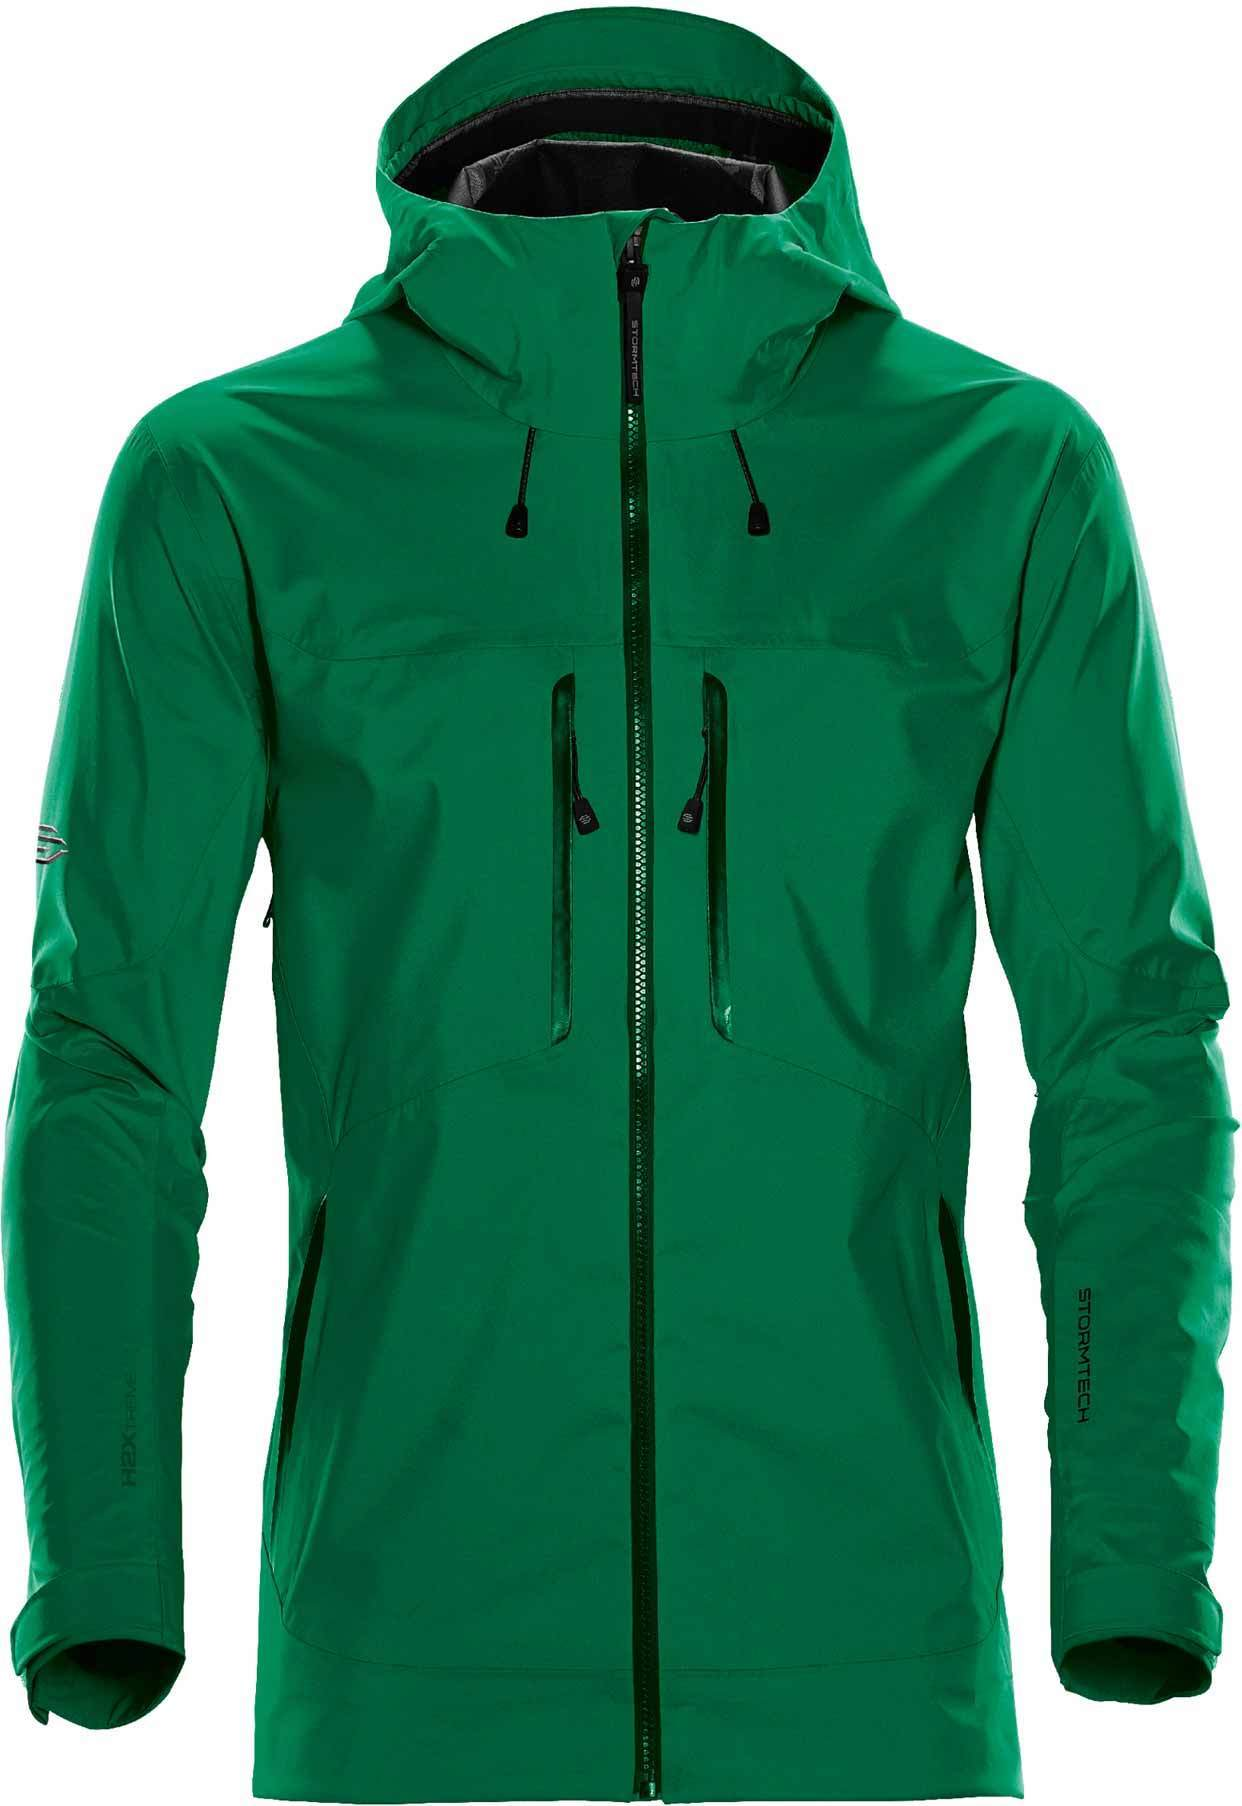 rx stormtech stormshell synthesis jewel azure performance clothing insulated